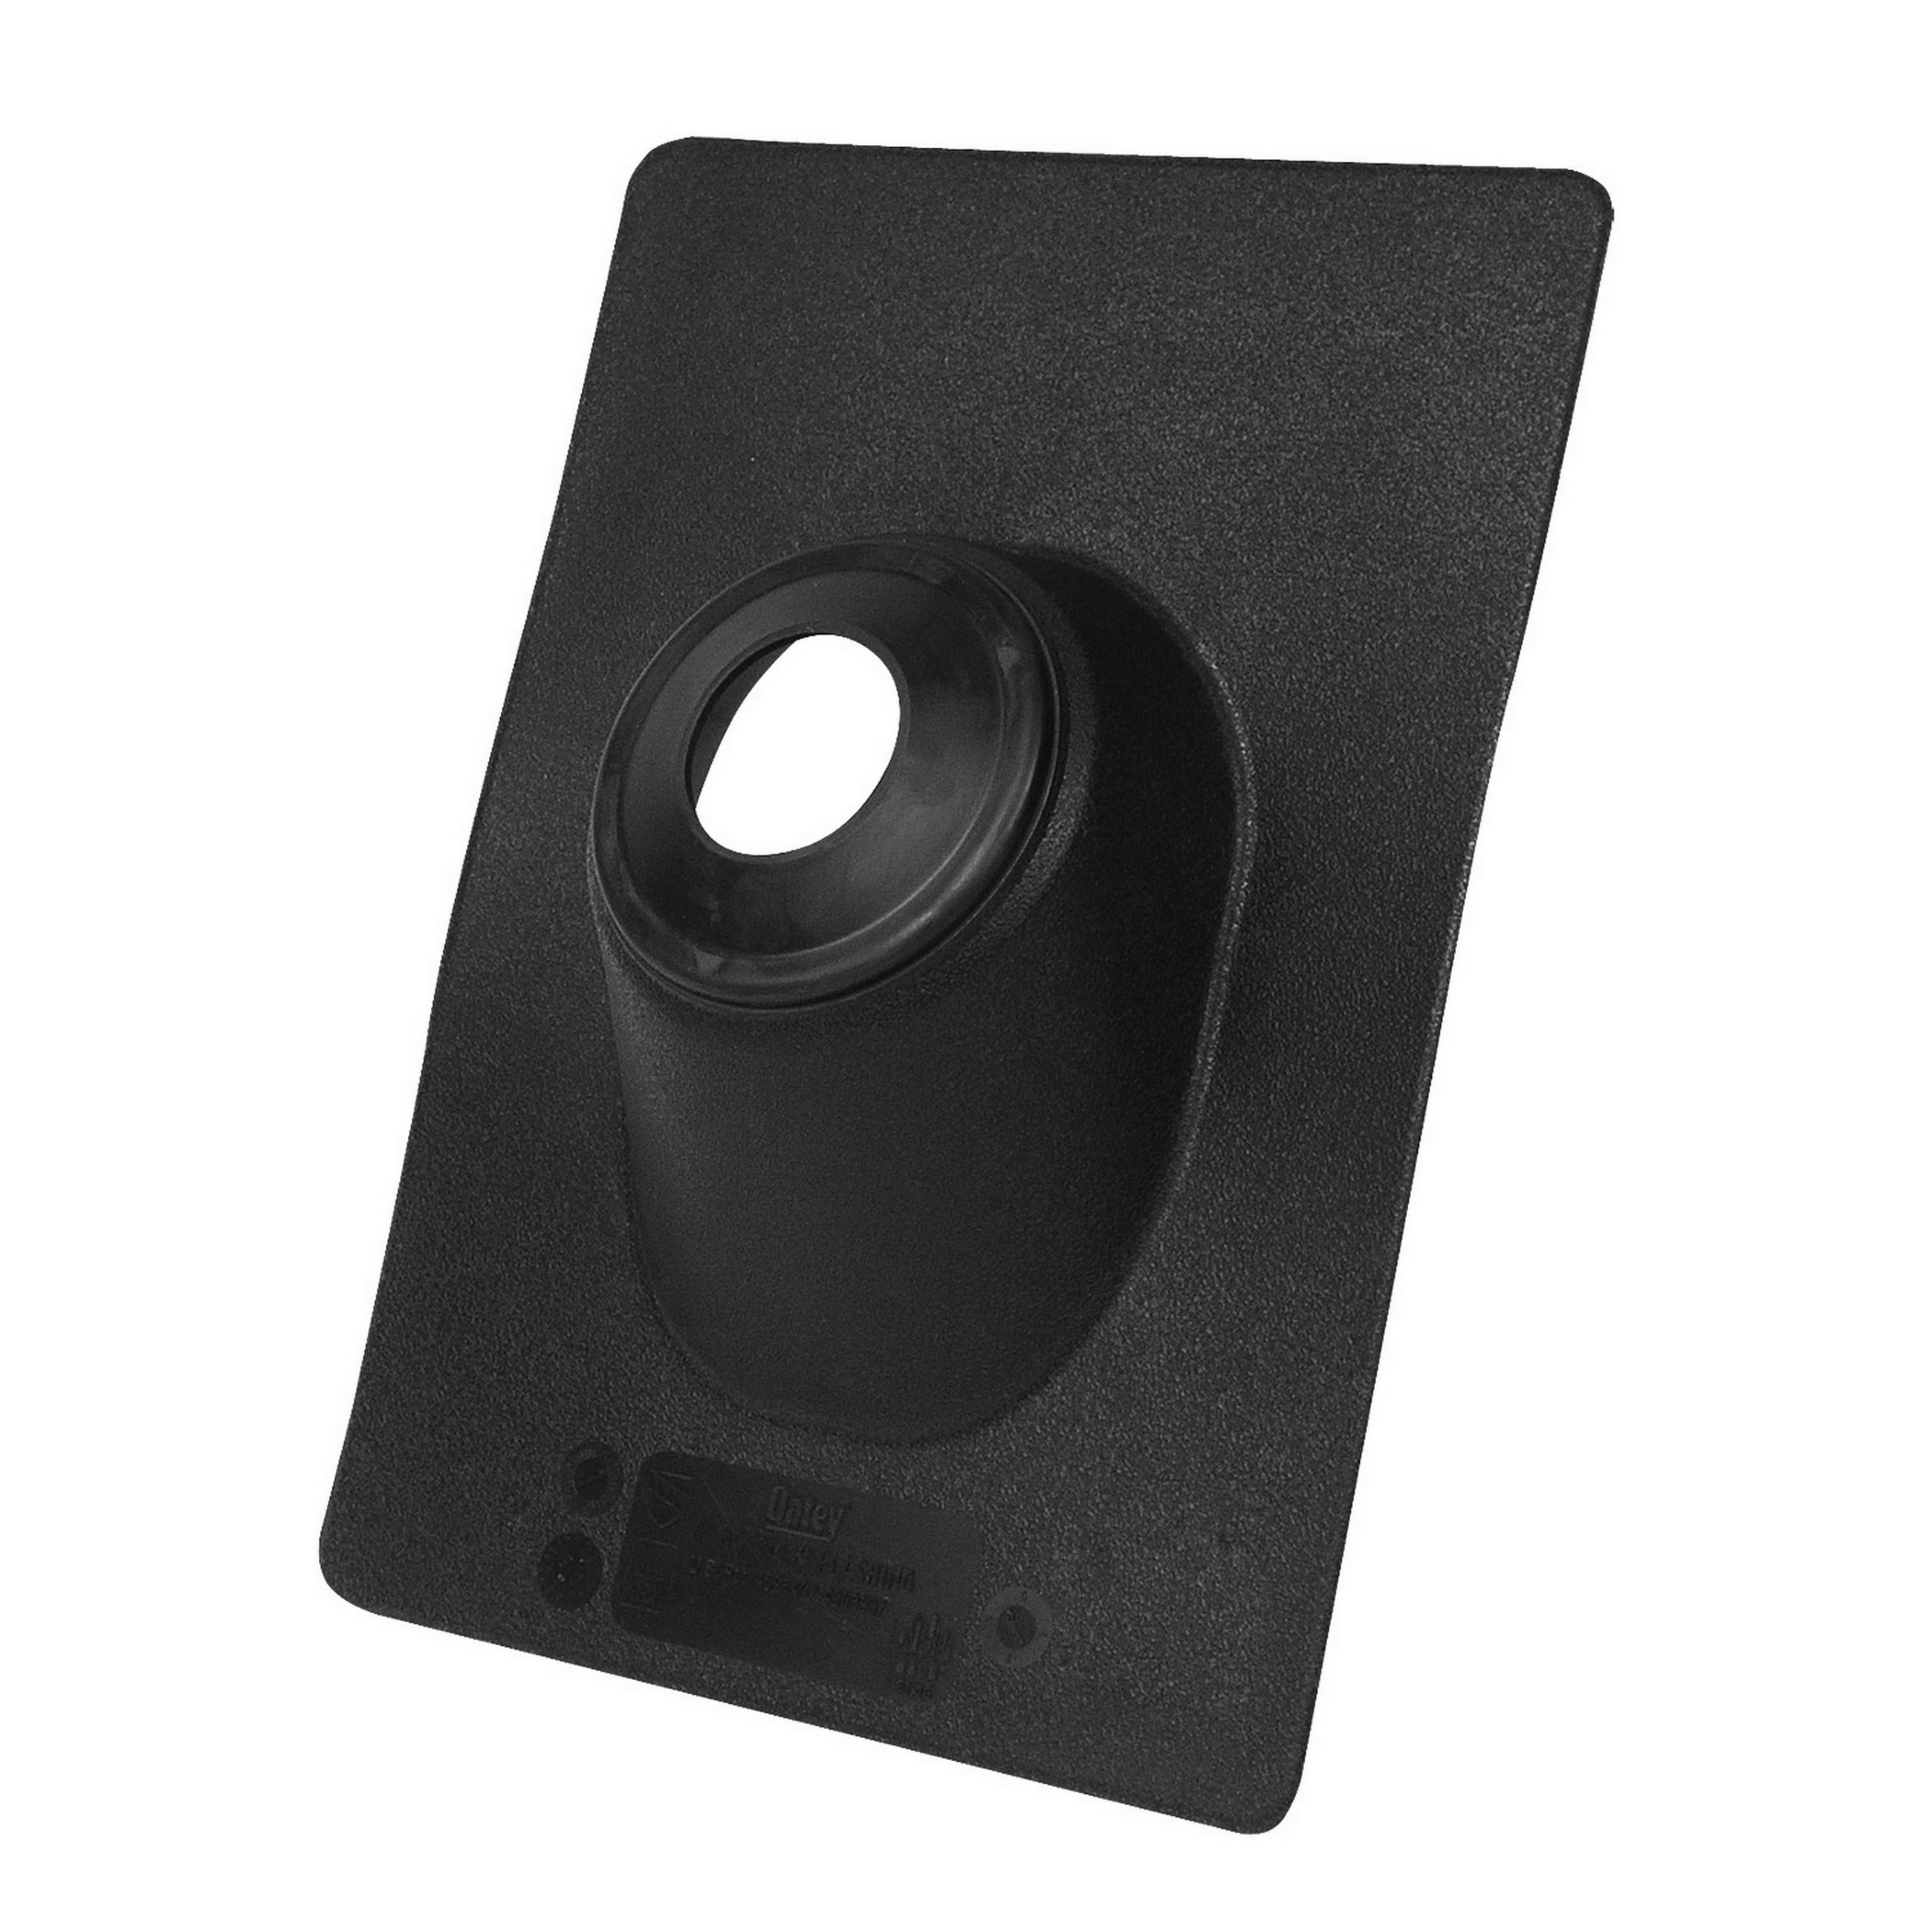 Oatey® No-Calk® 11909 Black Thermoplastic Base Roof Flashing, 2 in